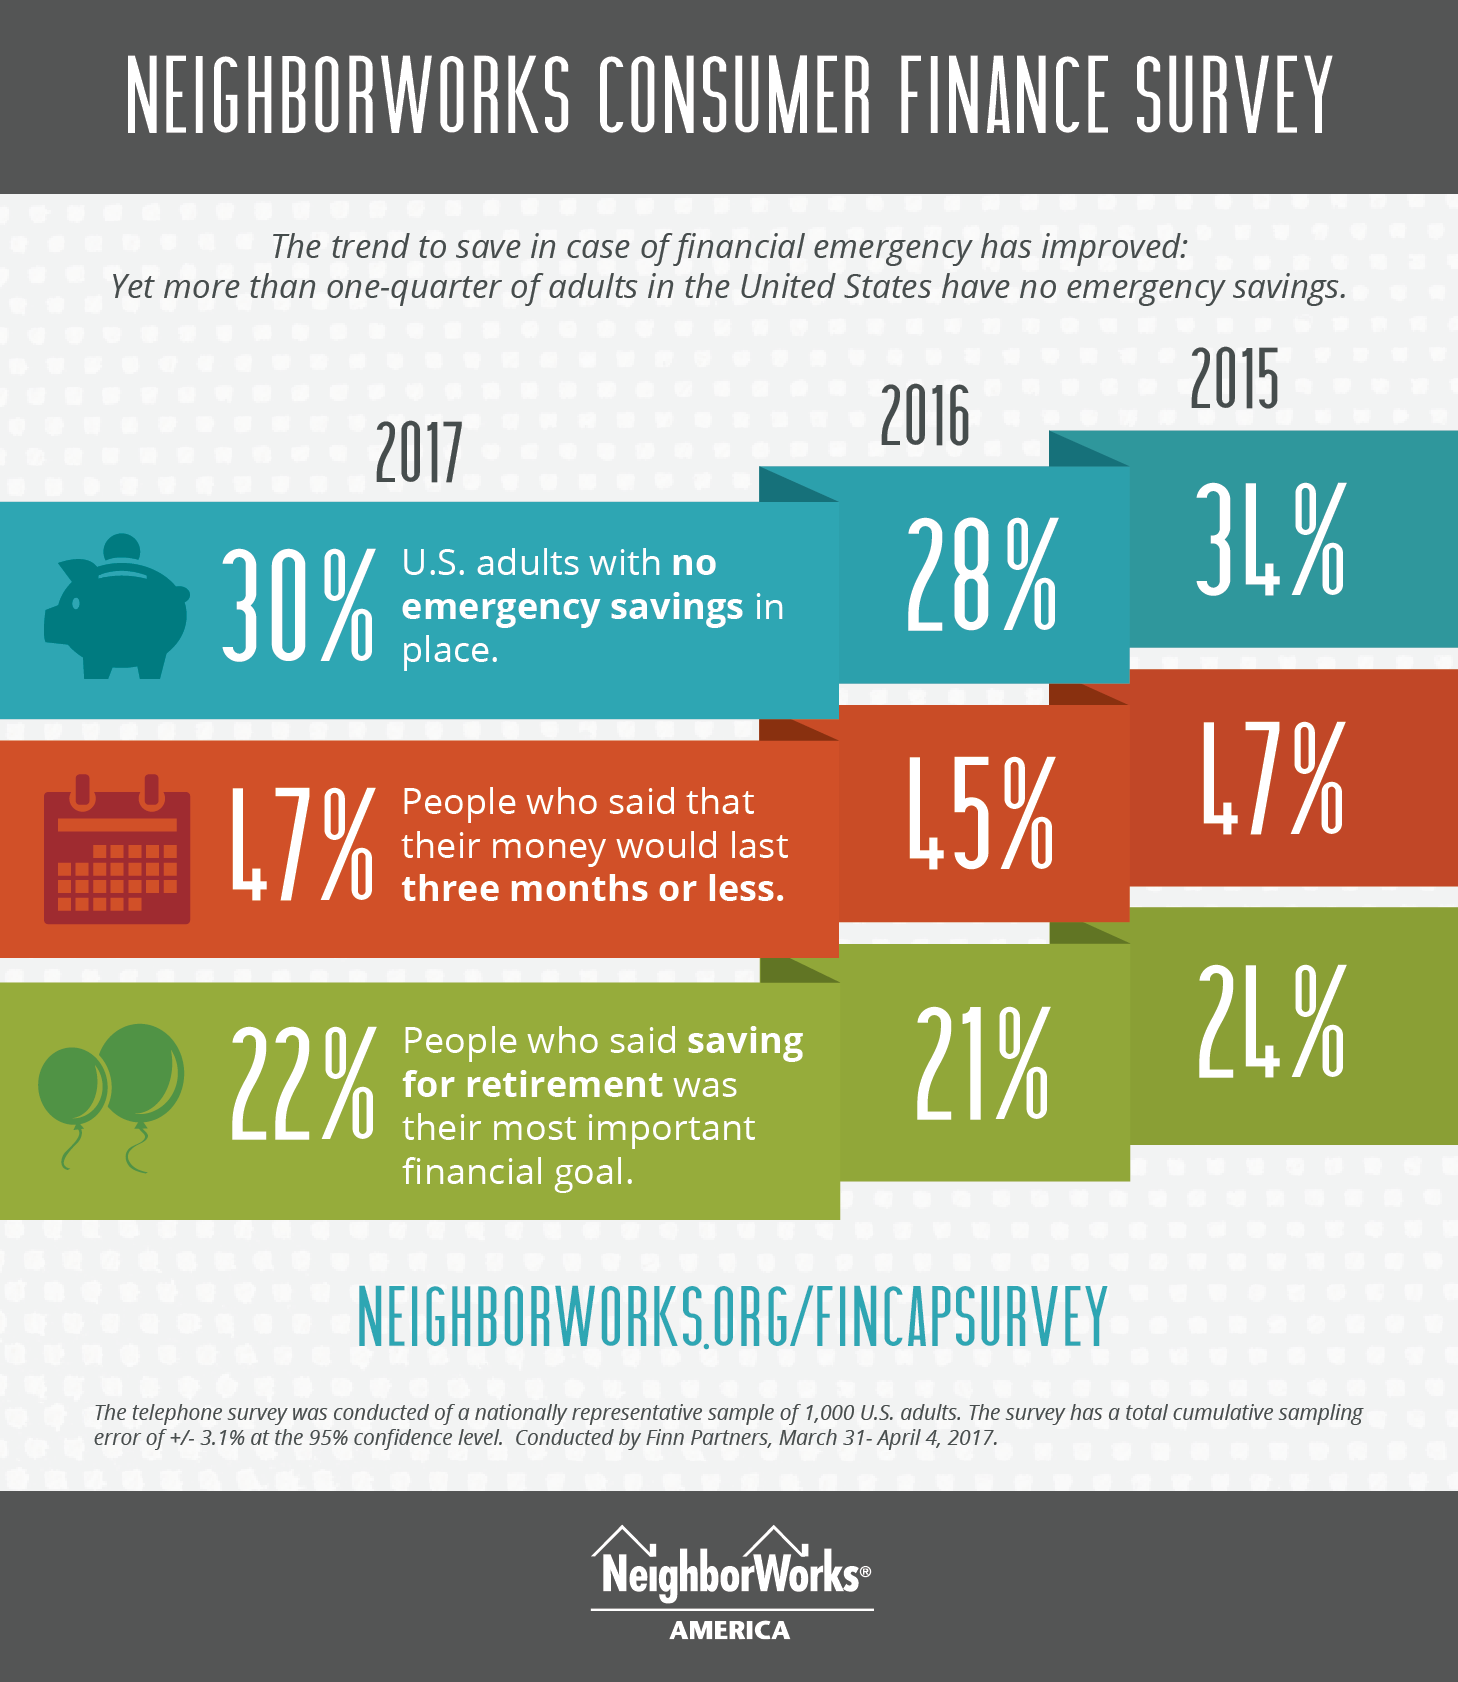 Consumer Finance Survey